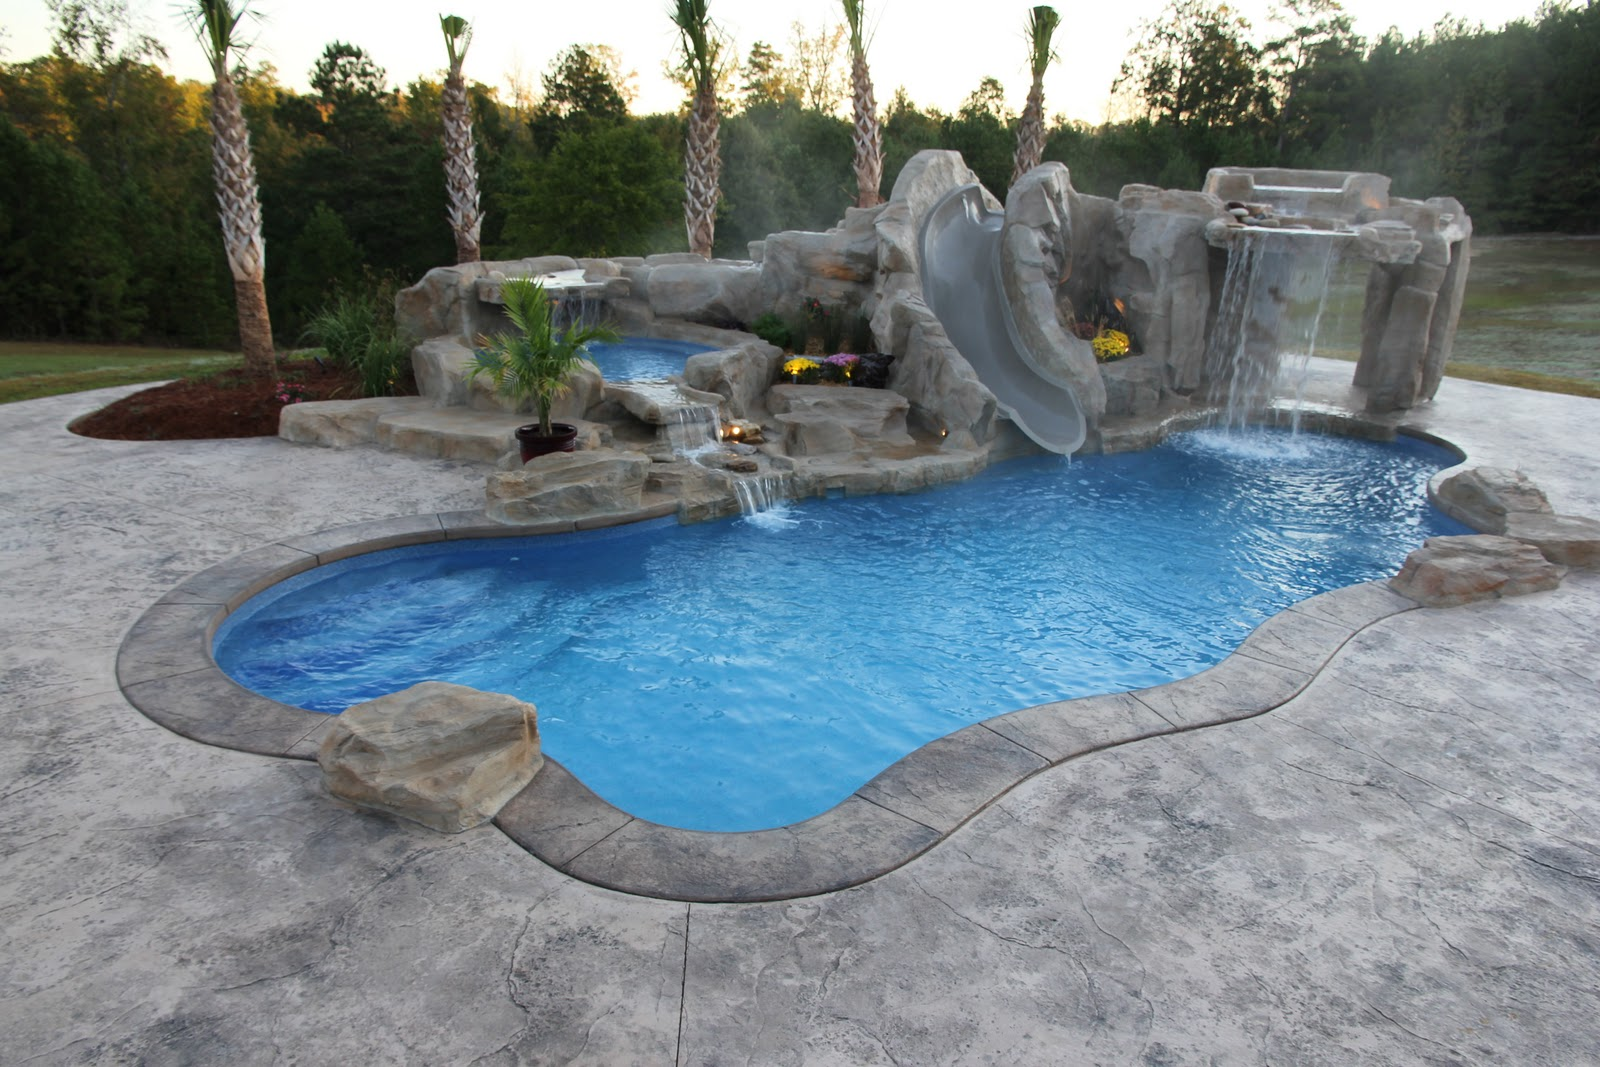 Fiberglass Pool Repair 21: Fiberglass Pool Grotto